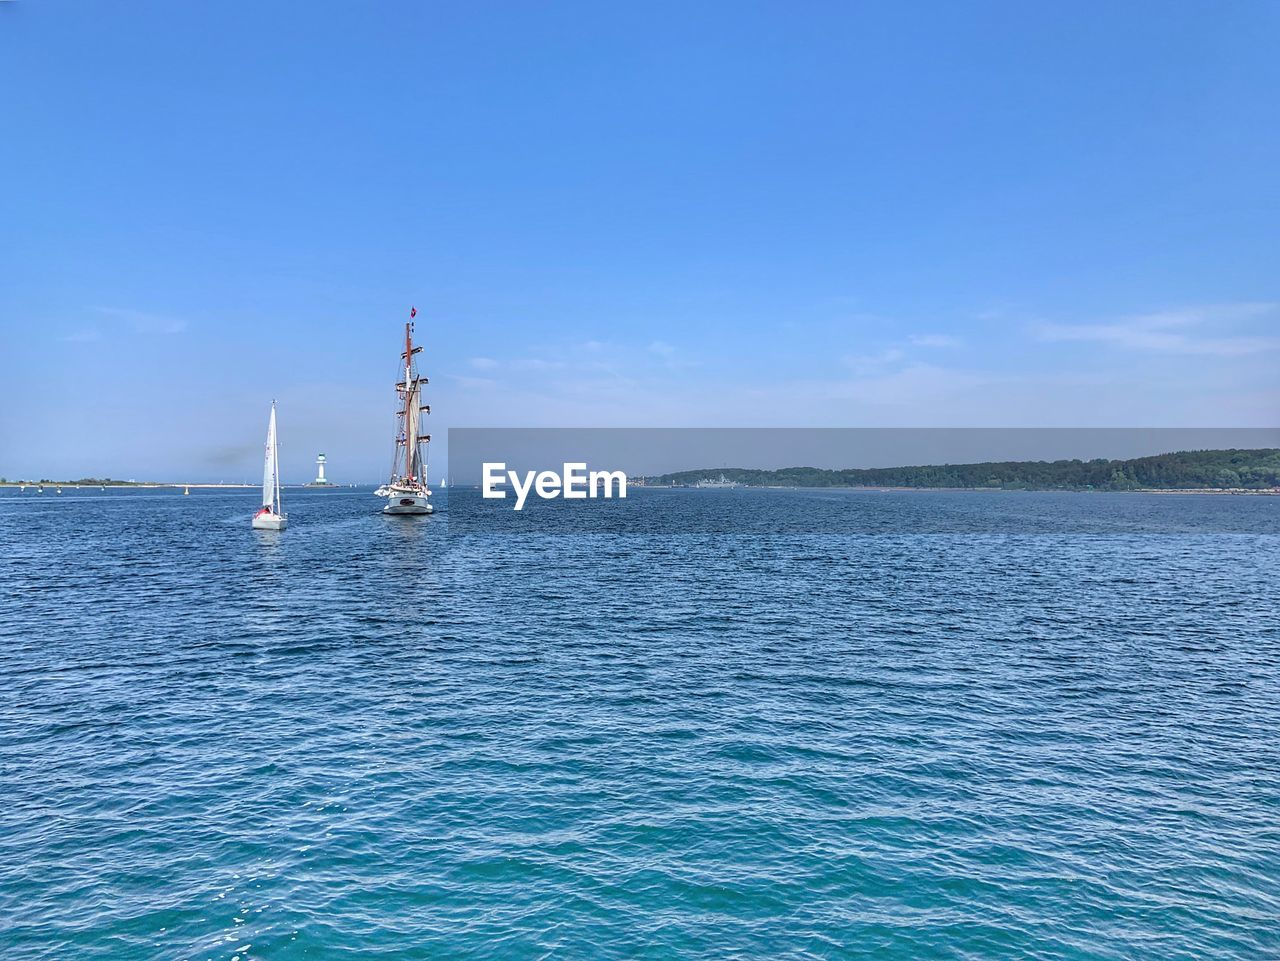 water, sea, blue, sky, waterfront, beauty in nature, transportation, day, scenics - nature, no people, nature, nautical vessel, industry, fuel and power generation, non-urban scene, oil industry, outdoors, offshore platform, mode of transportation, sailboat